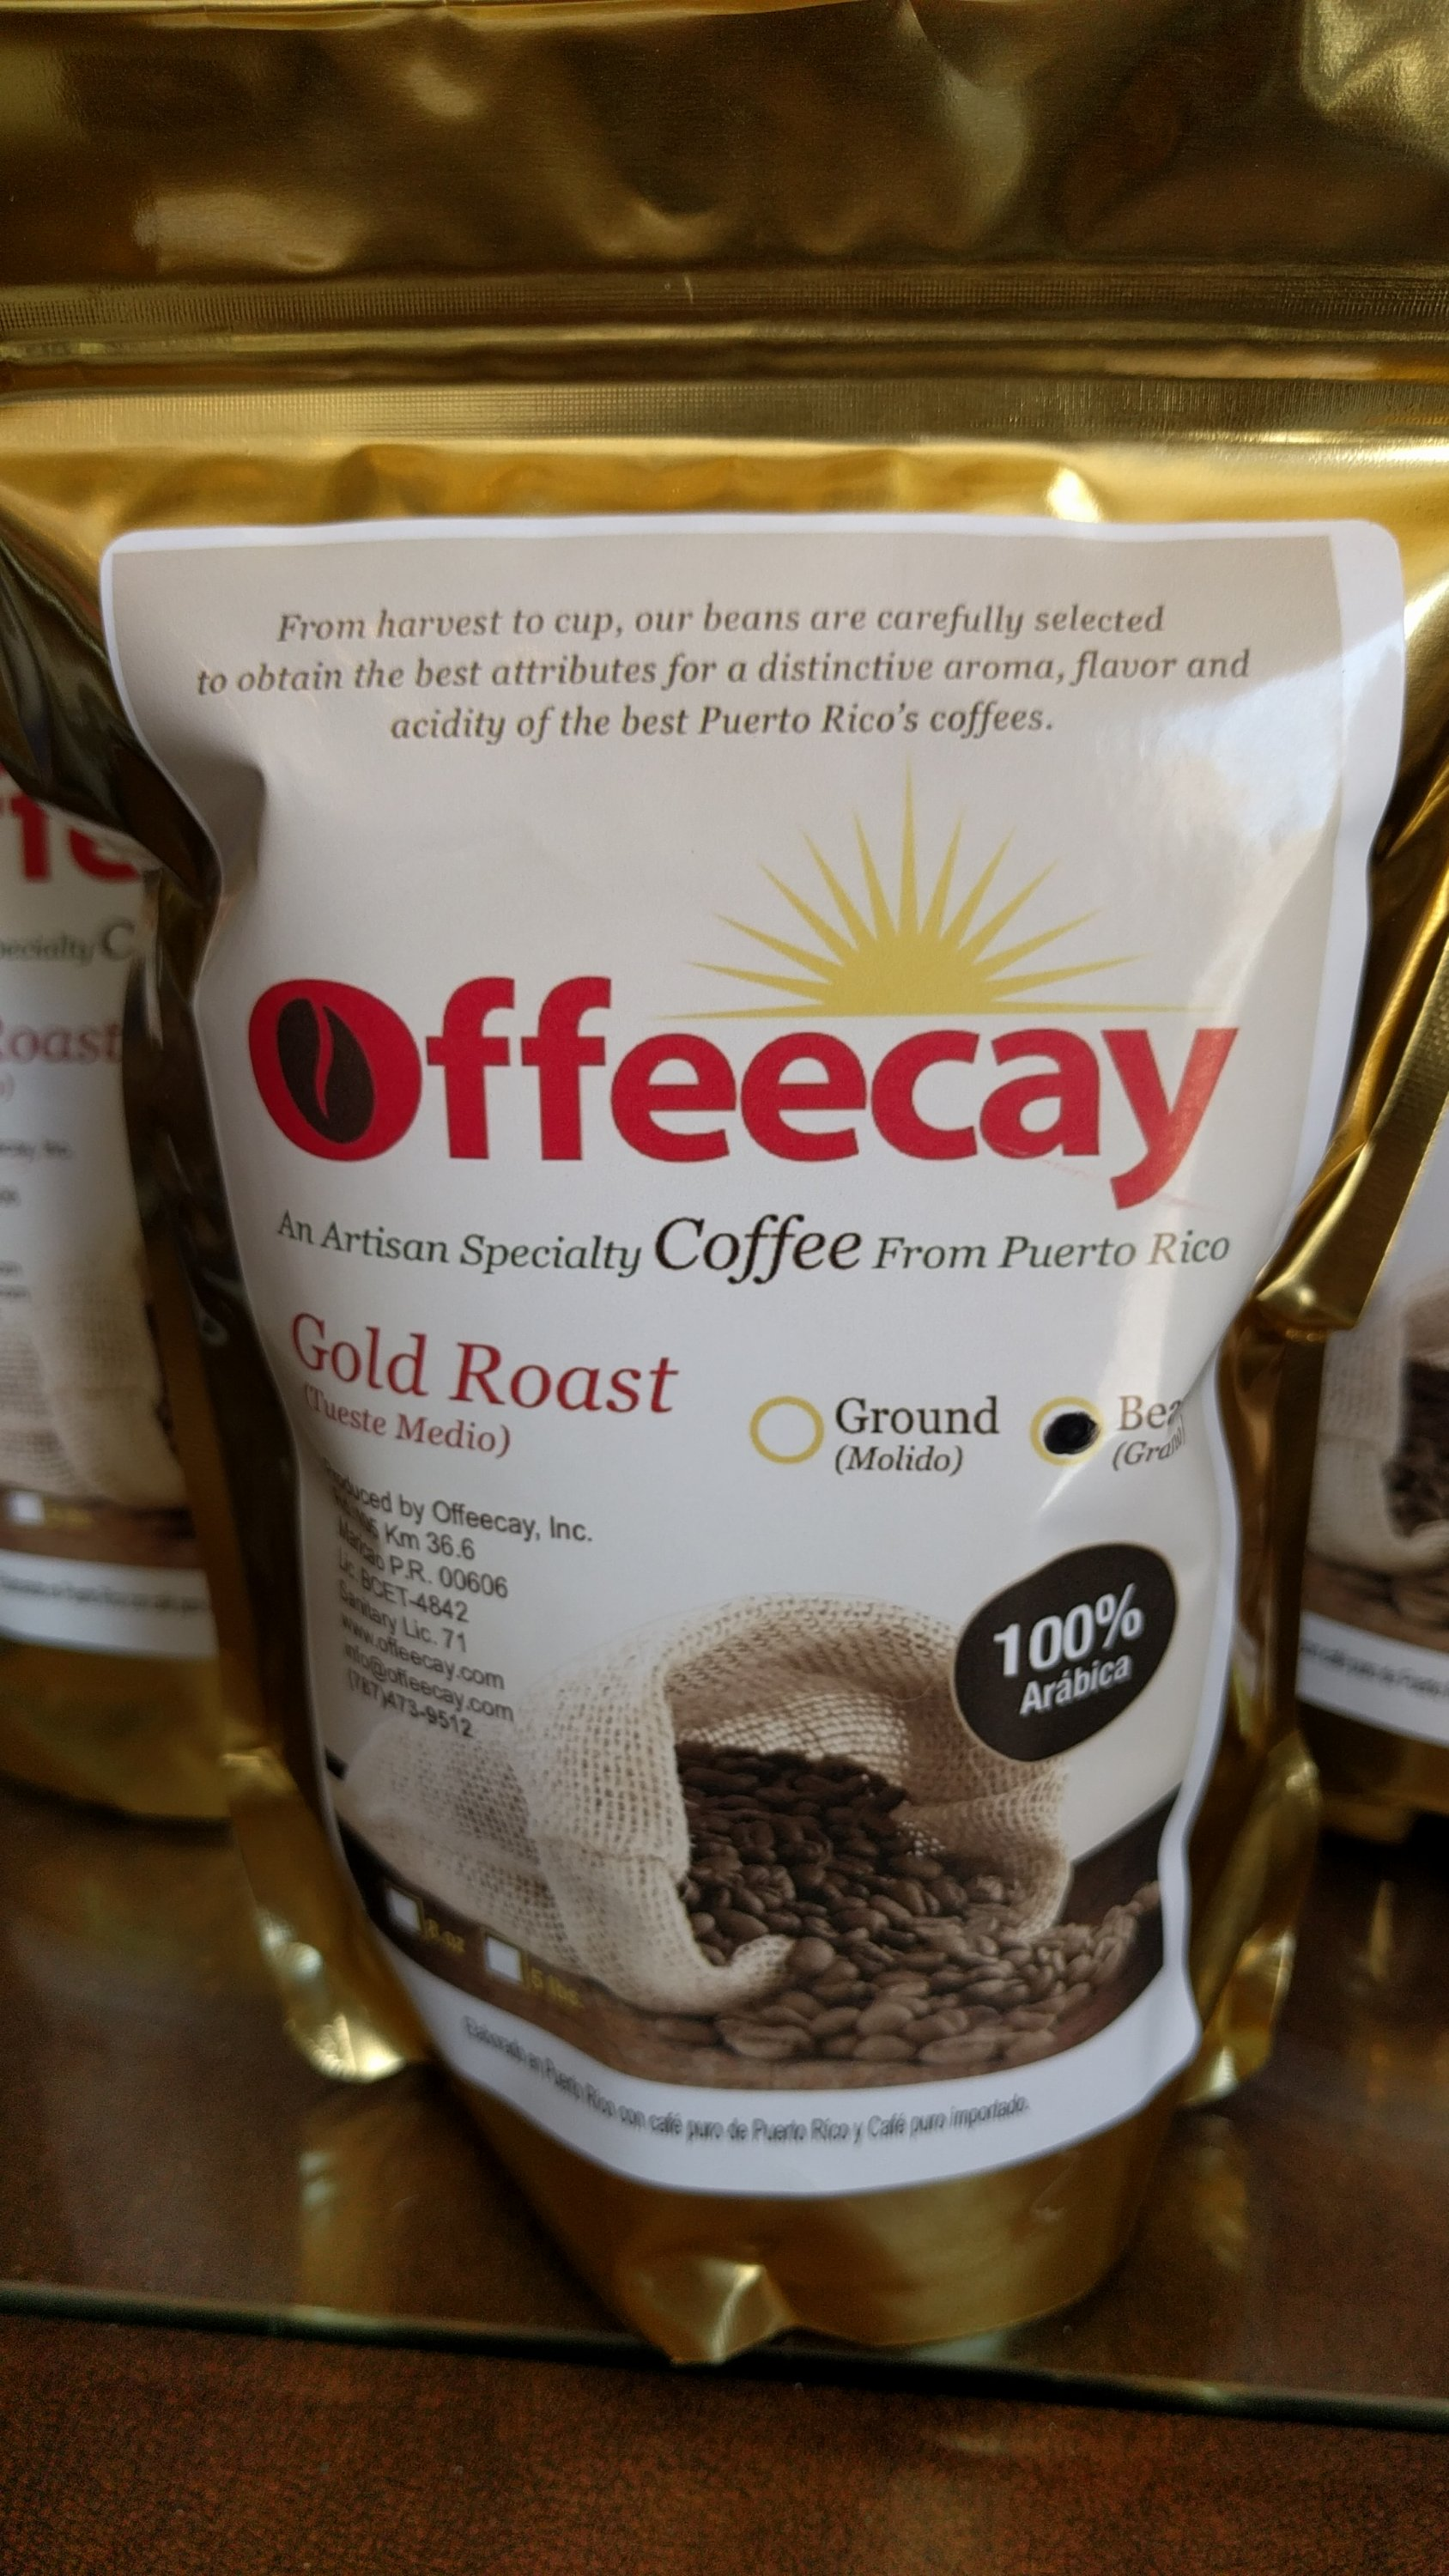 Pack of coffee beans